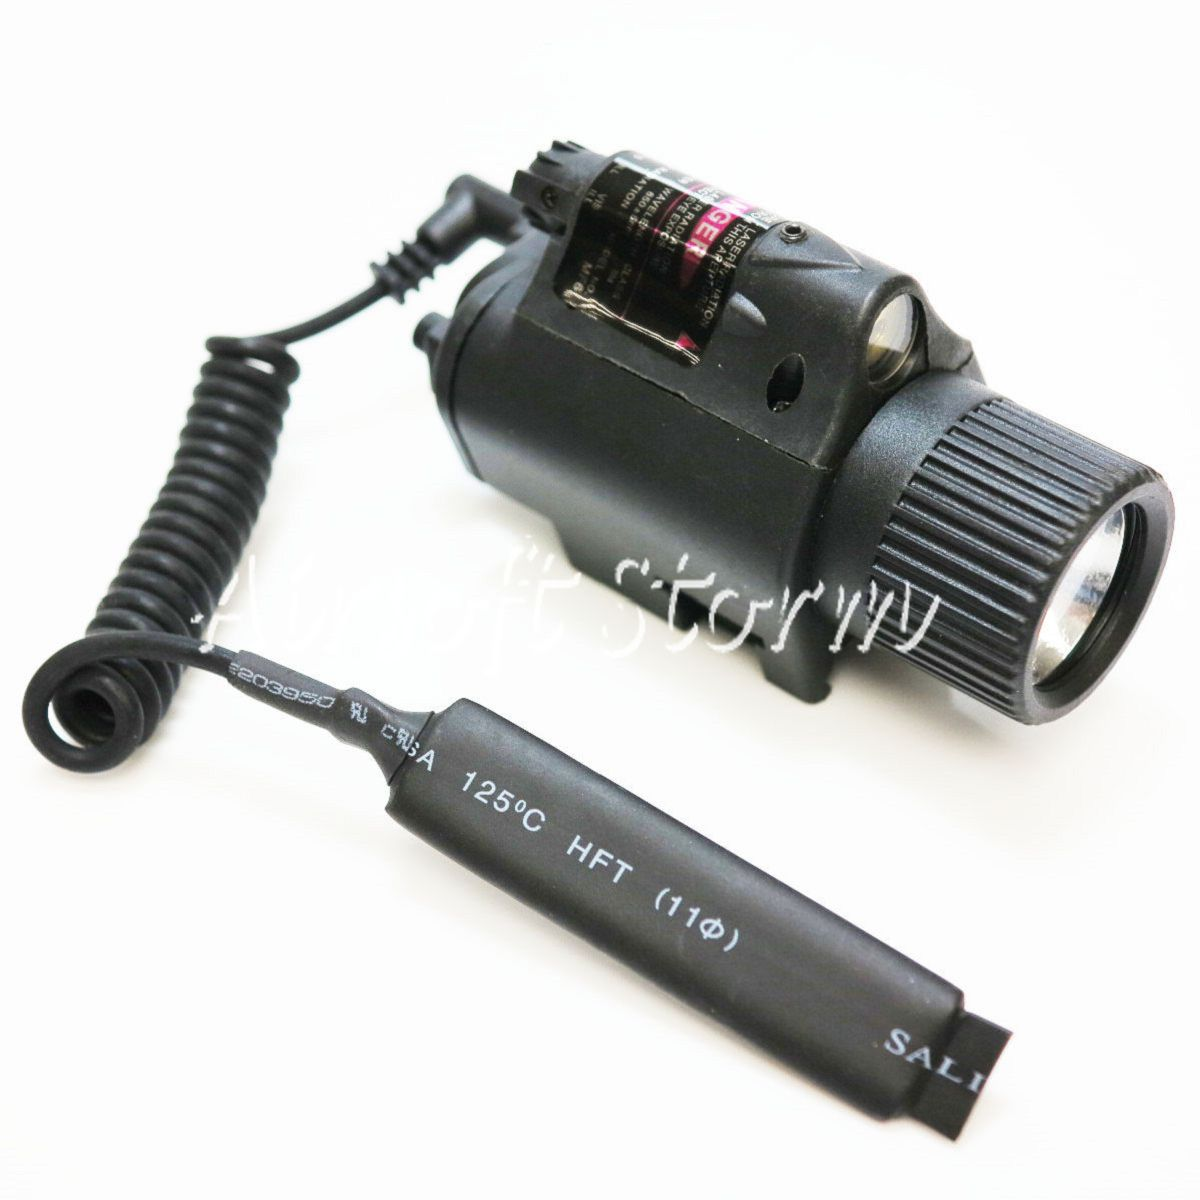 AEG Shooting Gear 2in1 180Lm LED Tactical Flashlight & Red Laser - Click Image to Close